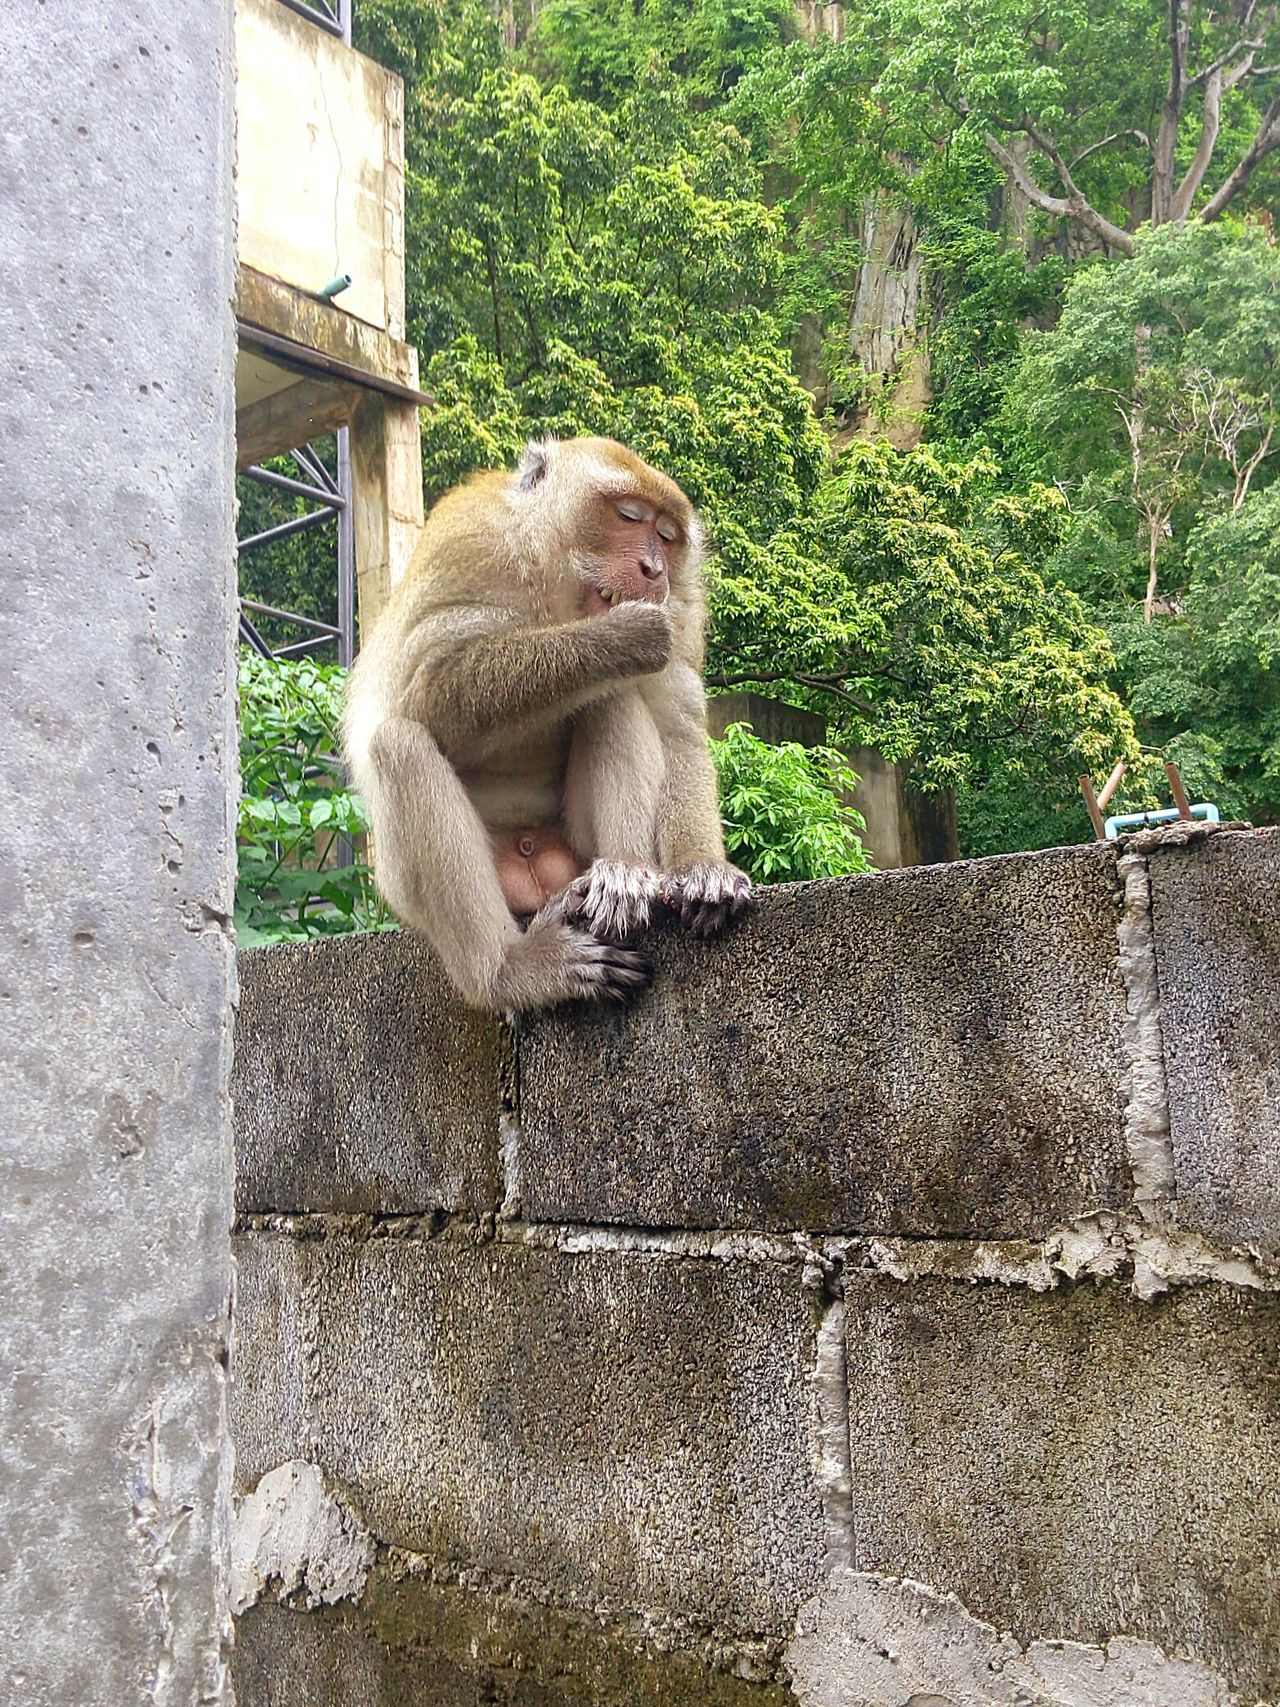 Animal Themes Day No People Monkey Nature Monkeyisland Eating!  Monkeylove Cute♡ Love Nature Moments Relax Time  Beauty In Nature